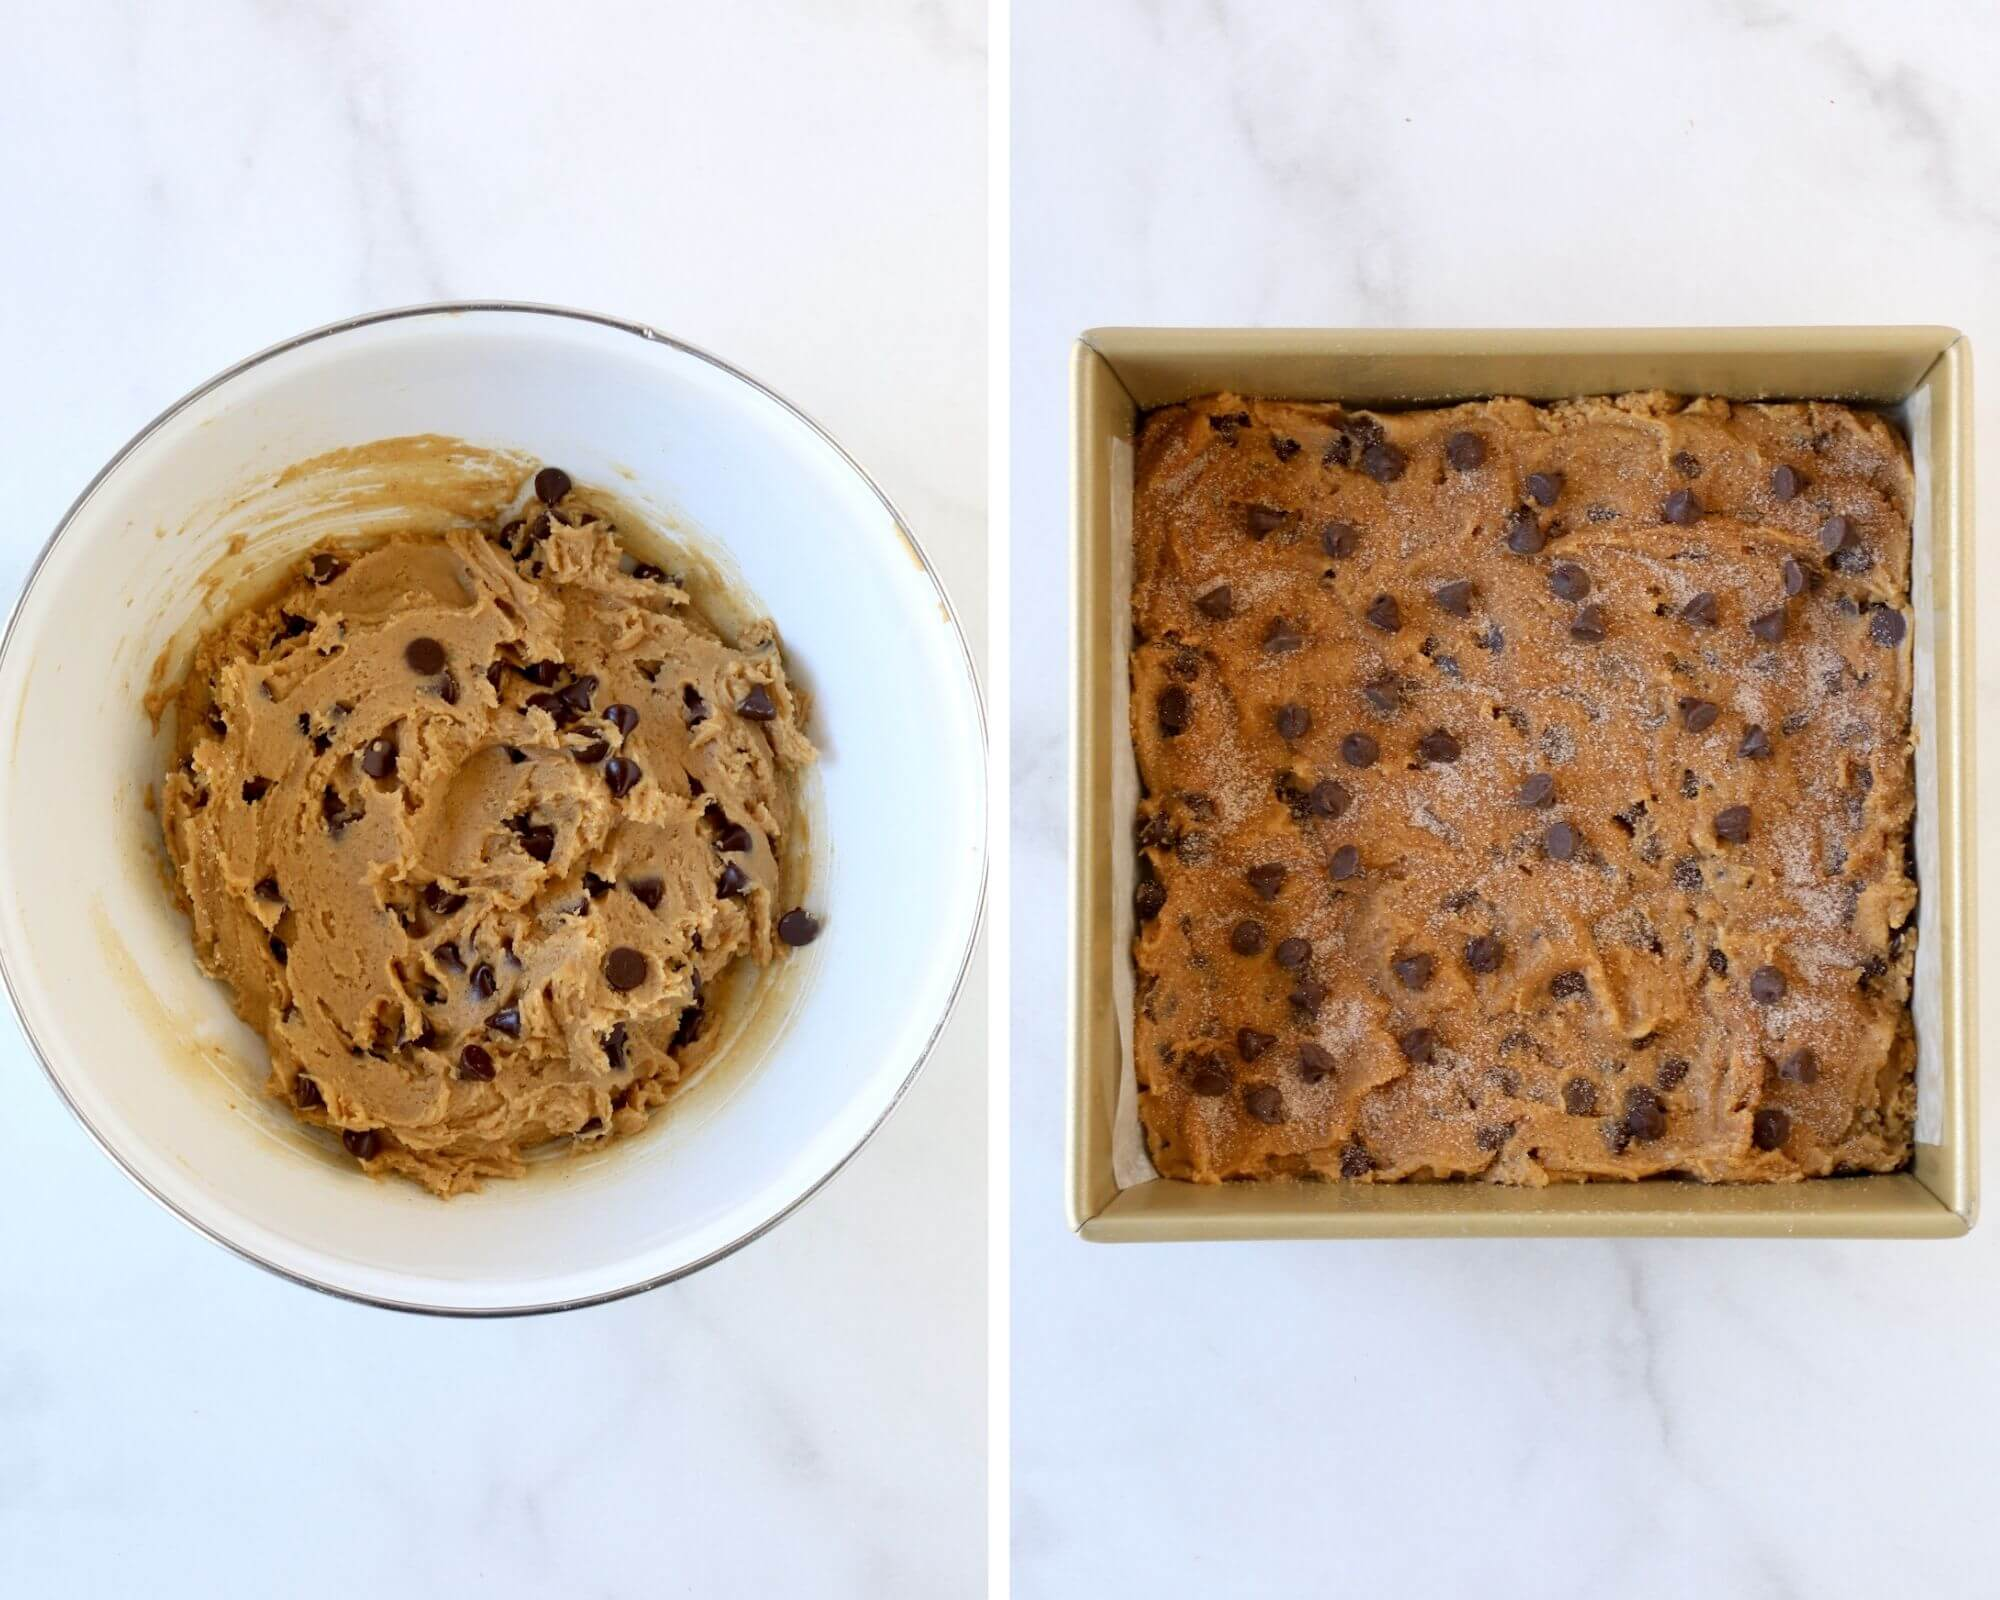 A bowl of cookie dough next to dough pressed into a square baking pan.